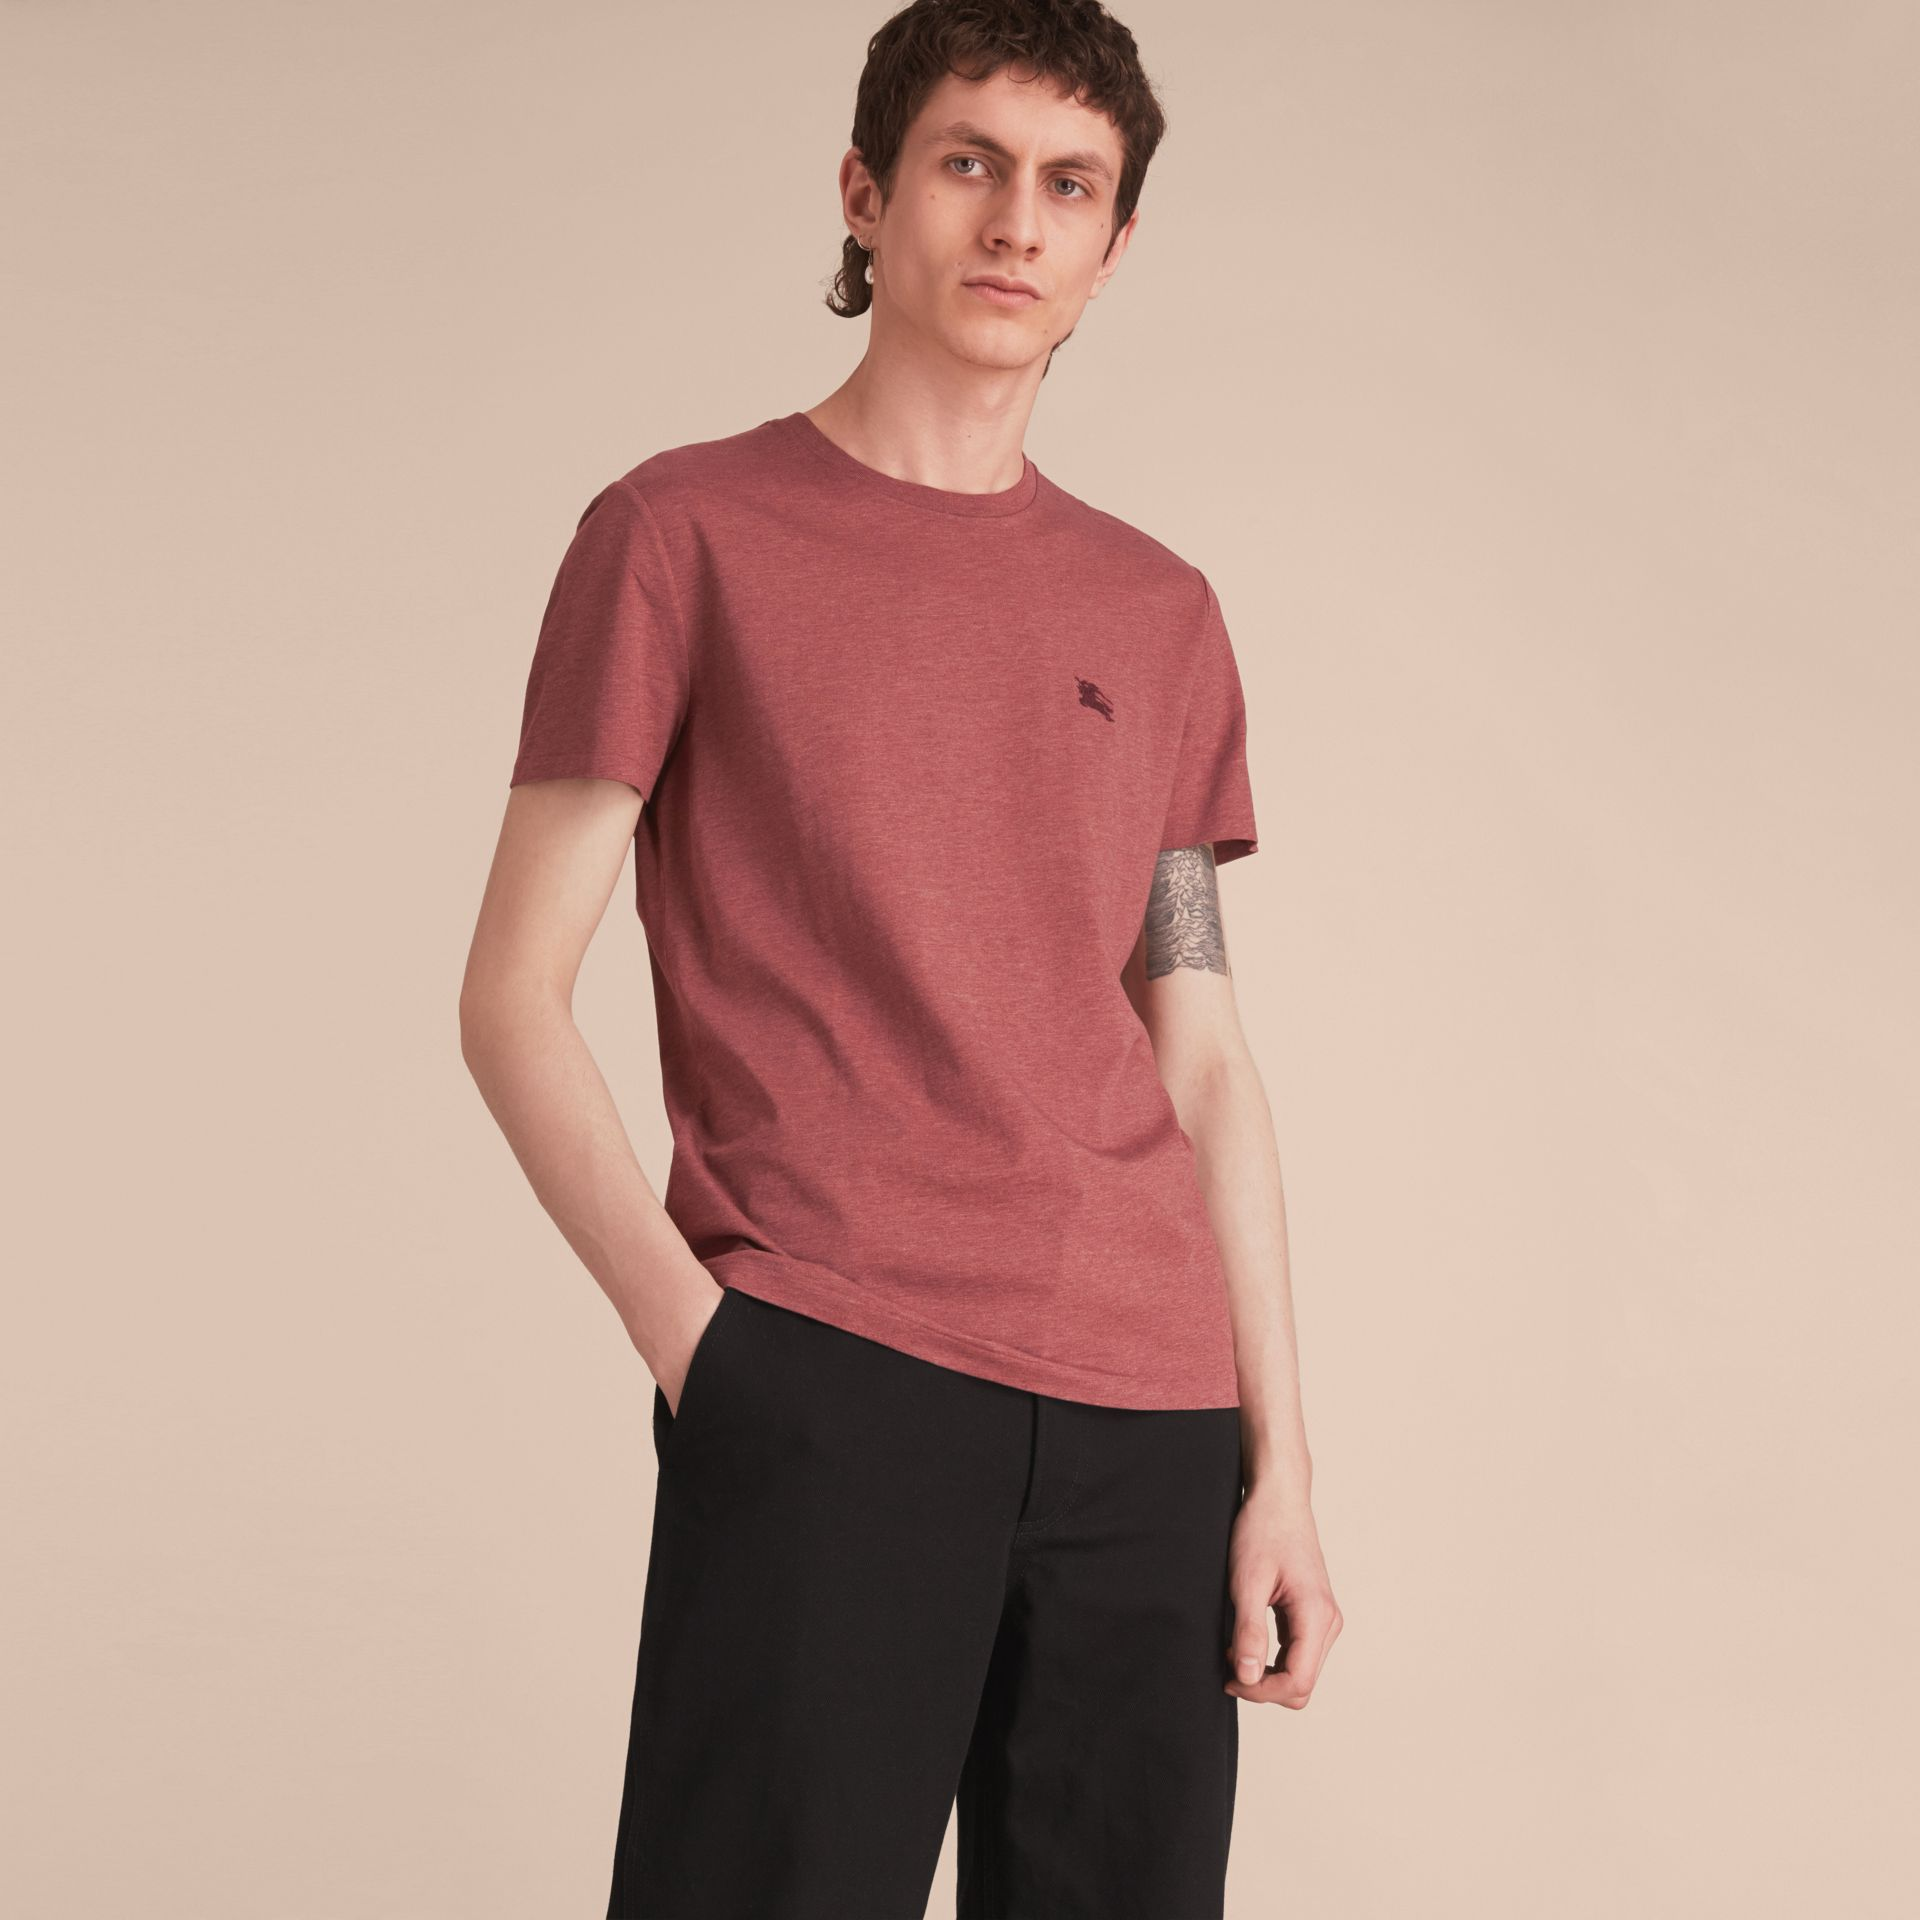 Cotton Jersey T-shirt in Russet Melange - Men | Burberry - gallery image 1